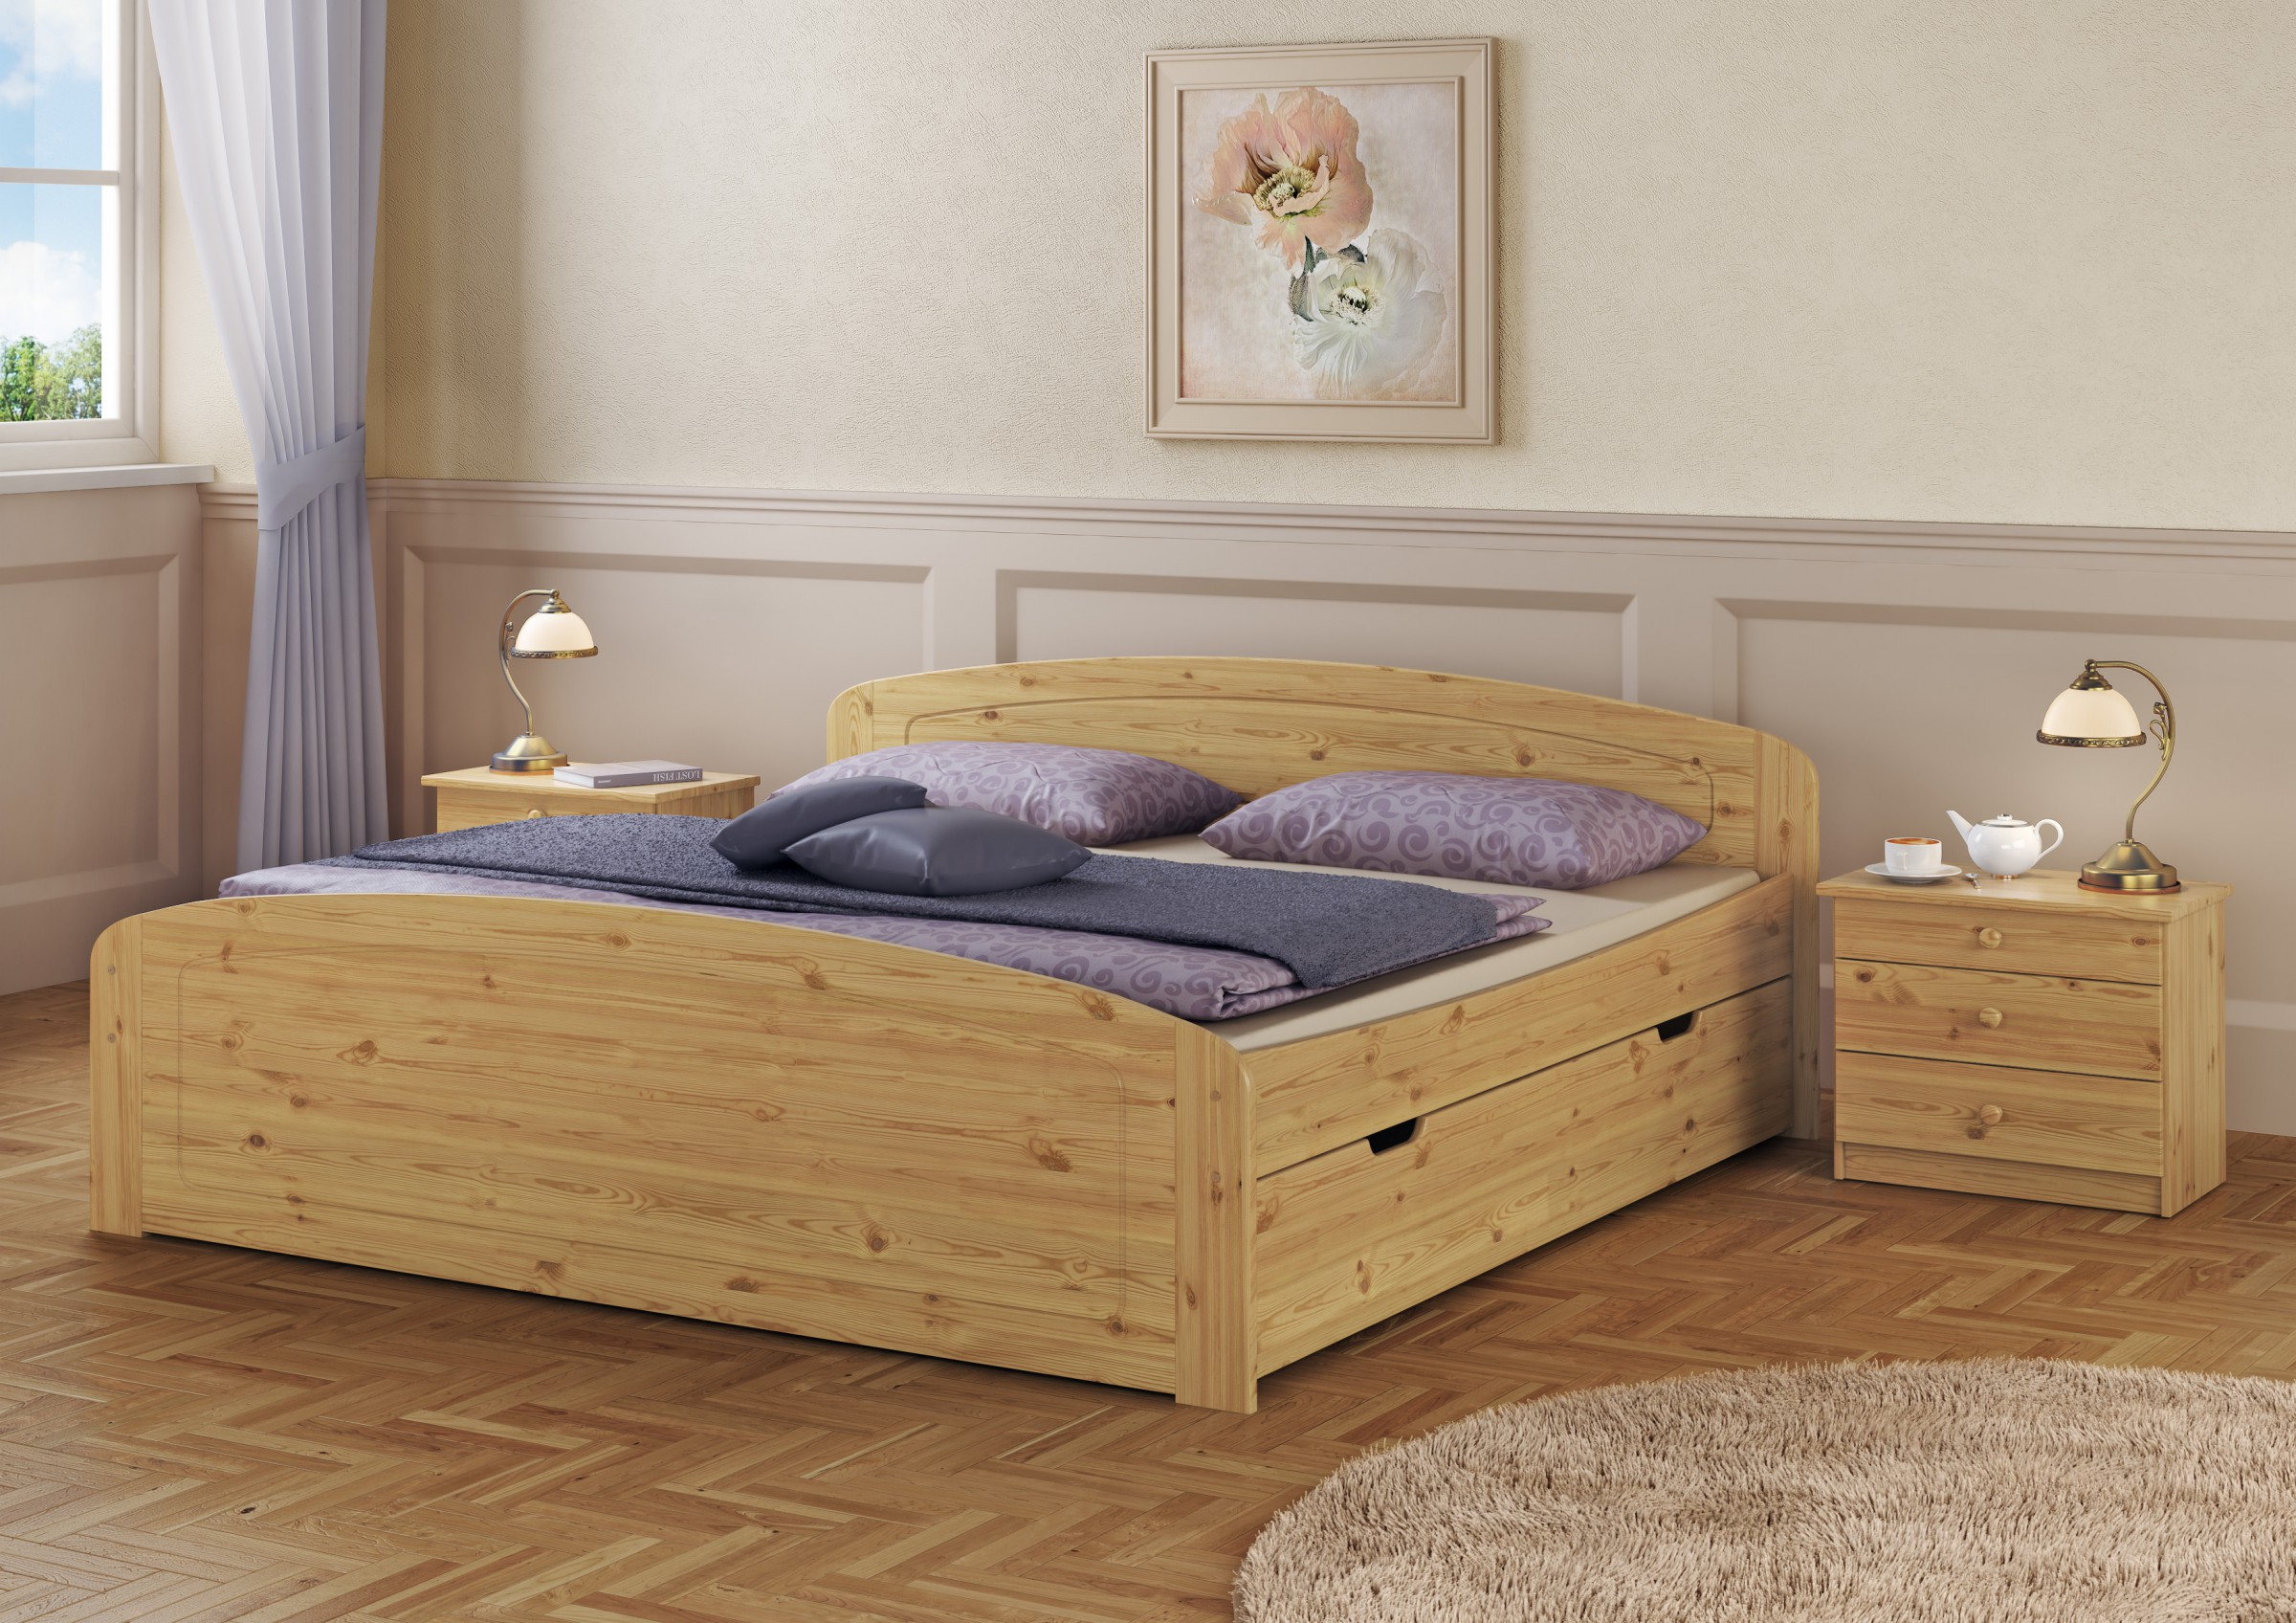 funktionsbett 140x200 kaltschaummatratze federholzrahmen massiv mt fv ebay. Black Bedroom Furniture Sets. Home Design Ideas